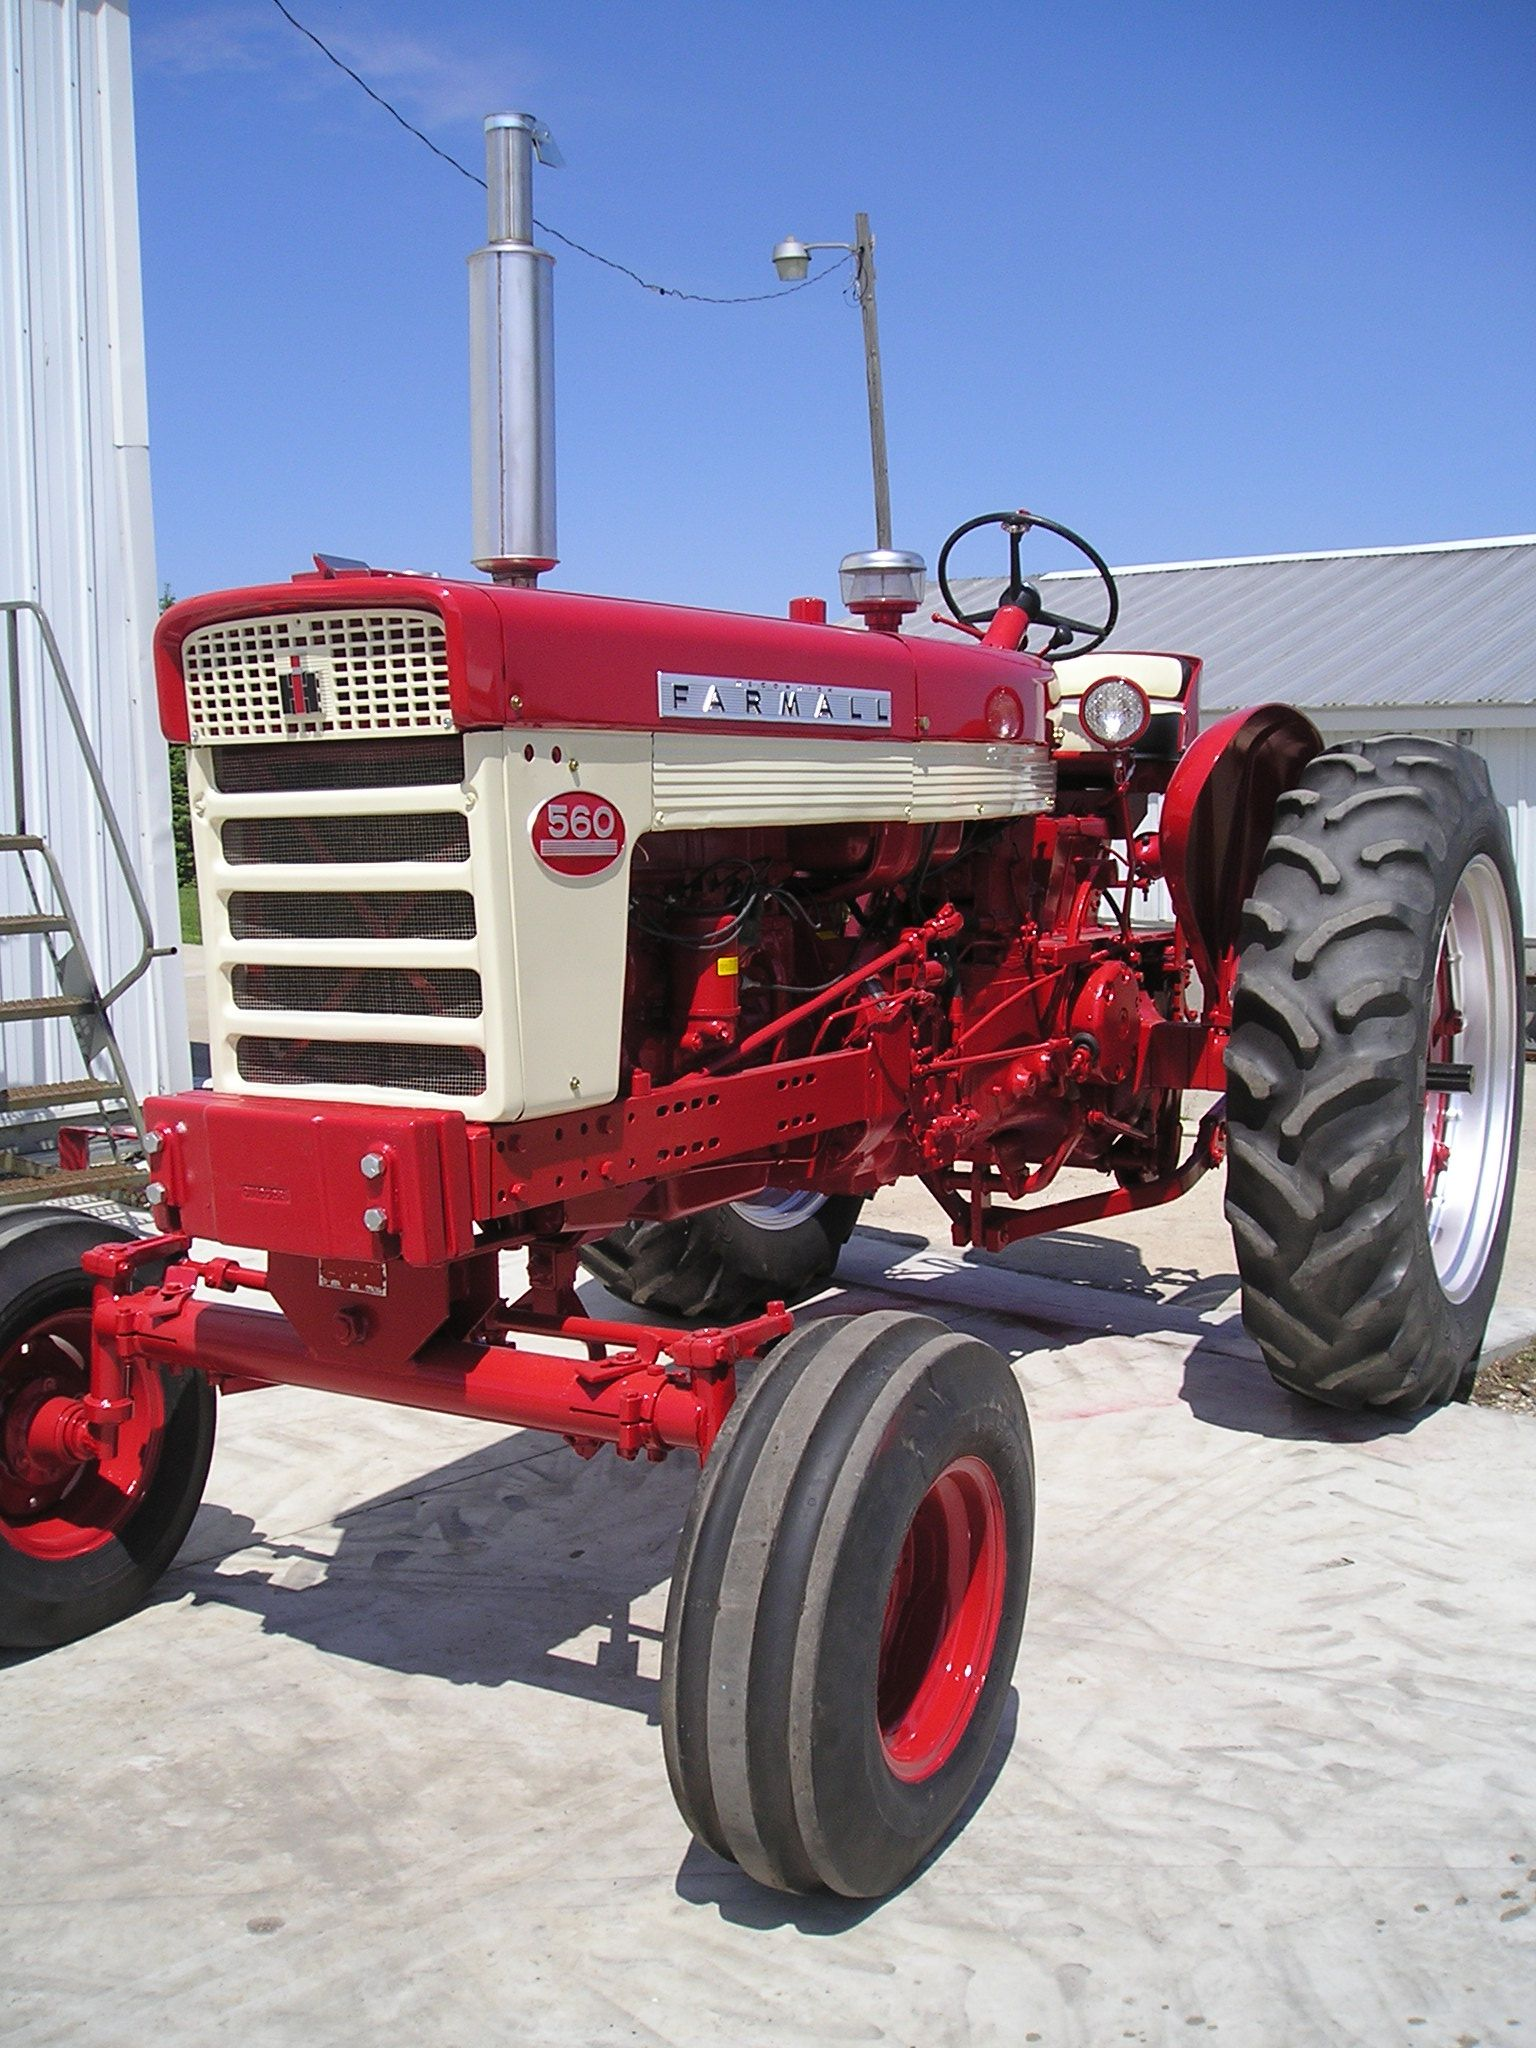 Restored Farmall 560its Identical To Ours